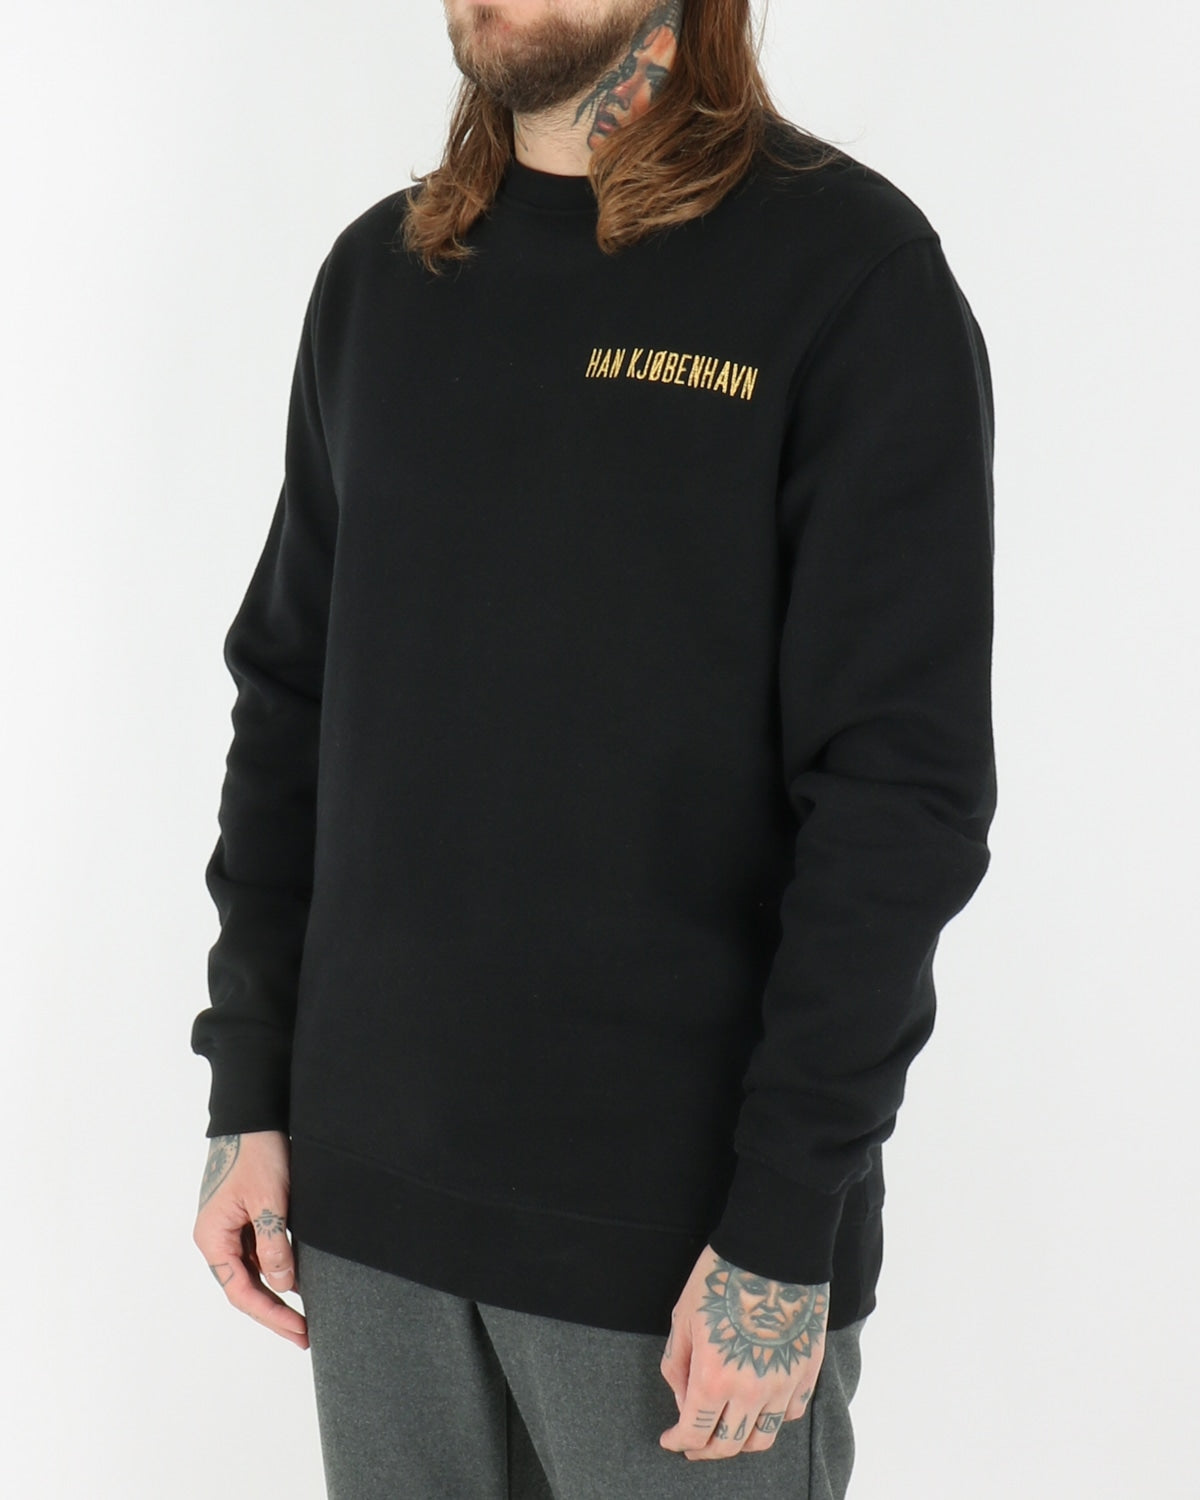 han kjobenhavn_casual crew sweatshirt_black gold logo_view_2_3